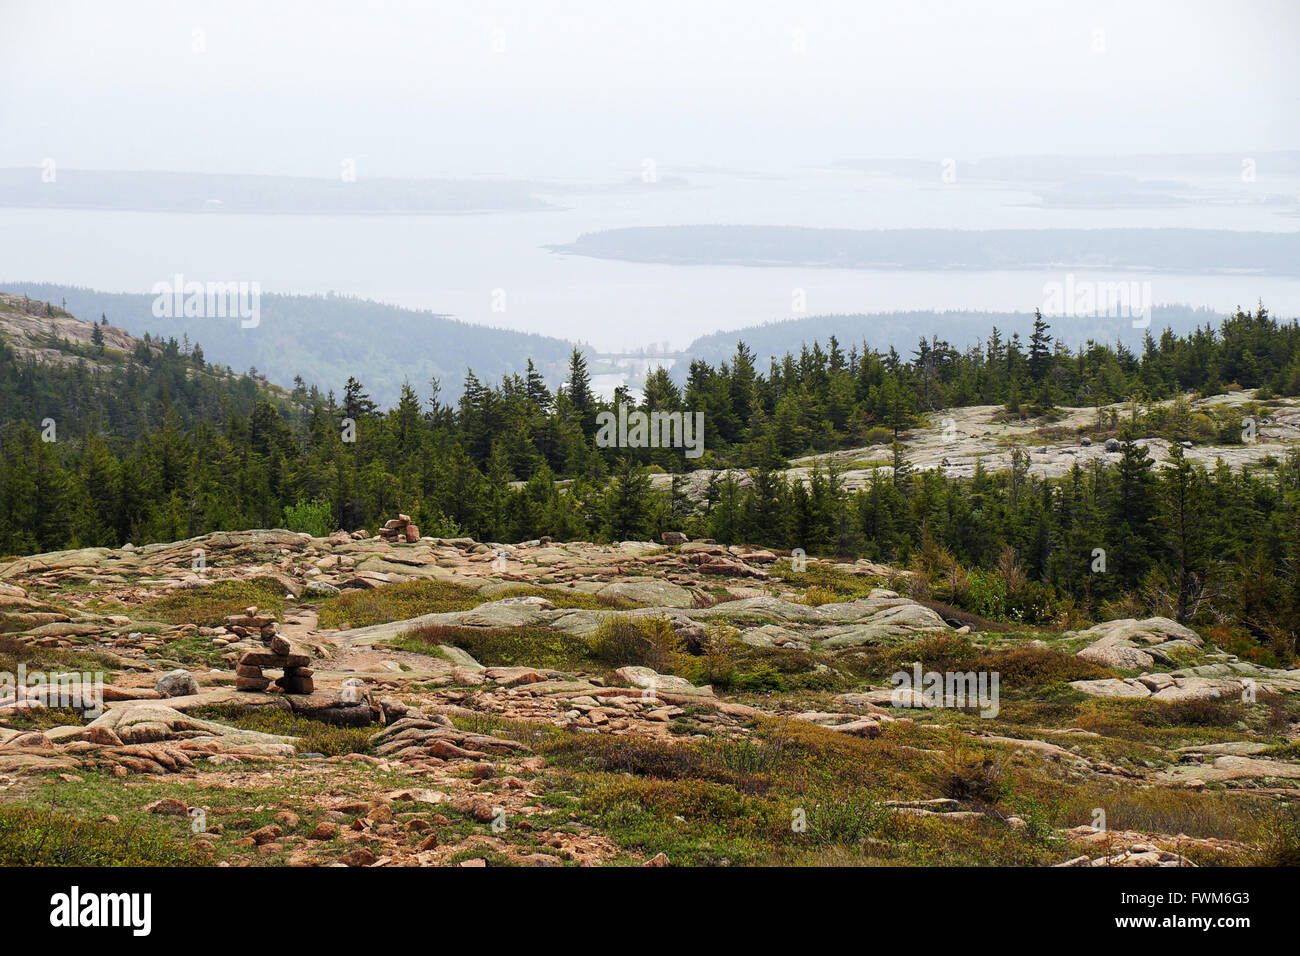 Landscape with boulders and spruces with remote lake view in the haze. - Stock Image